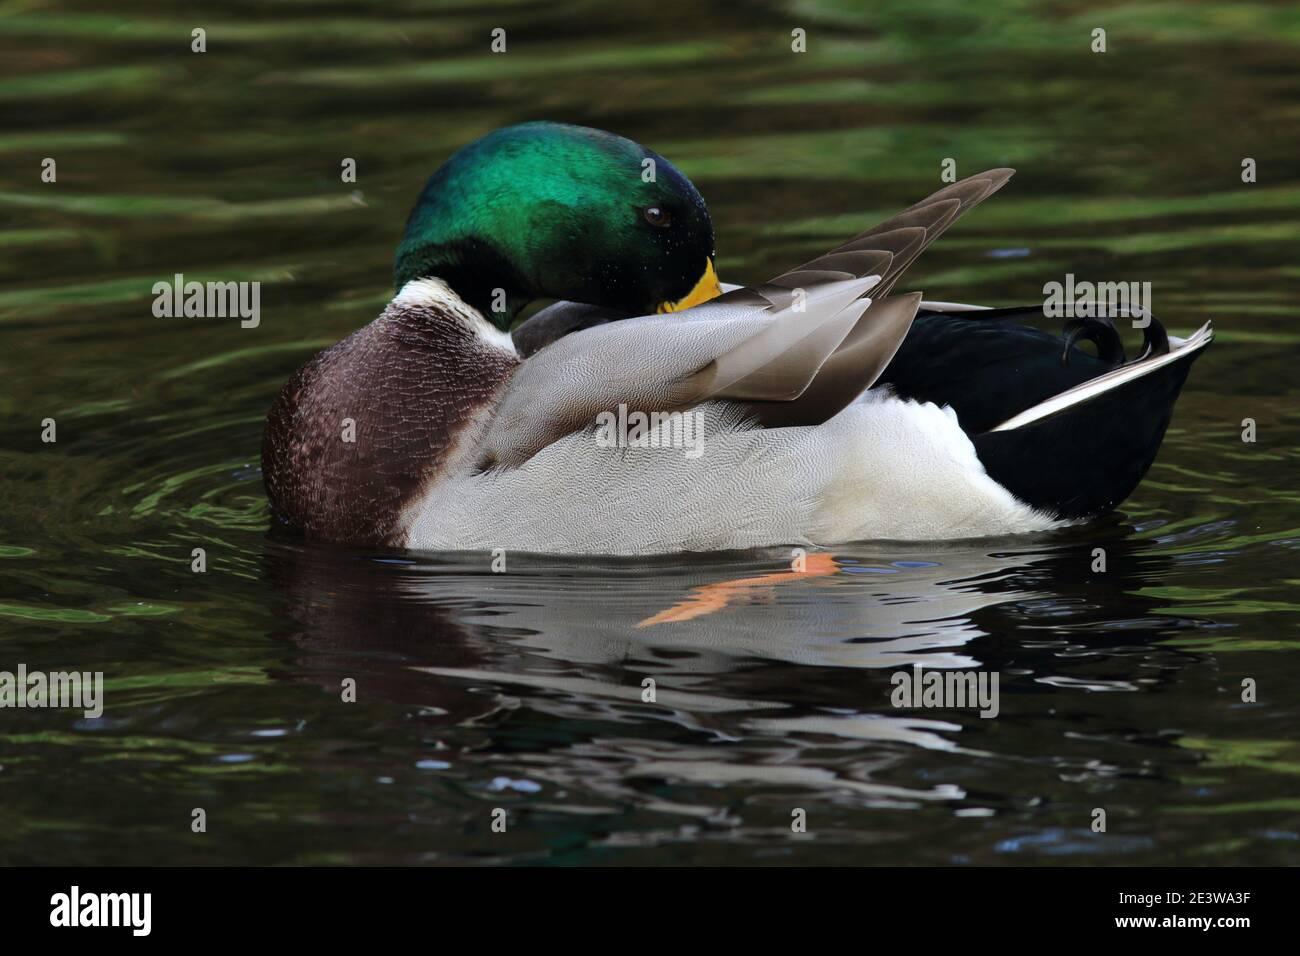 Anas platyrhynchos, a male Mallard duck preening on a pond with rippled rings of water around it. The bird green head and curly tail can be seen Stock Photo